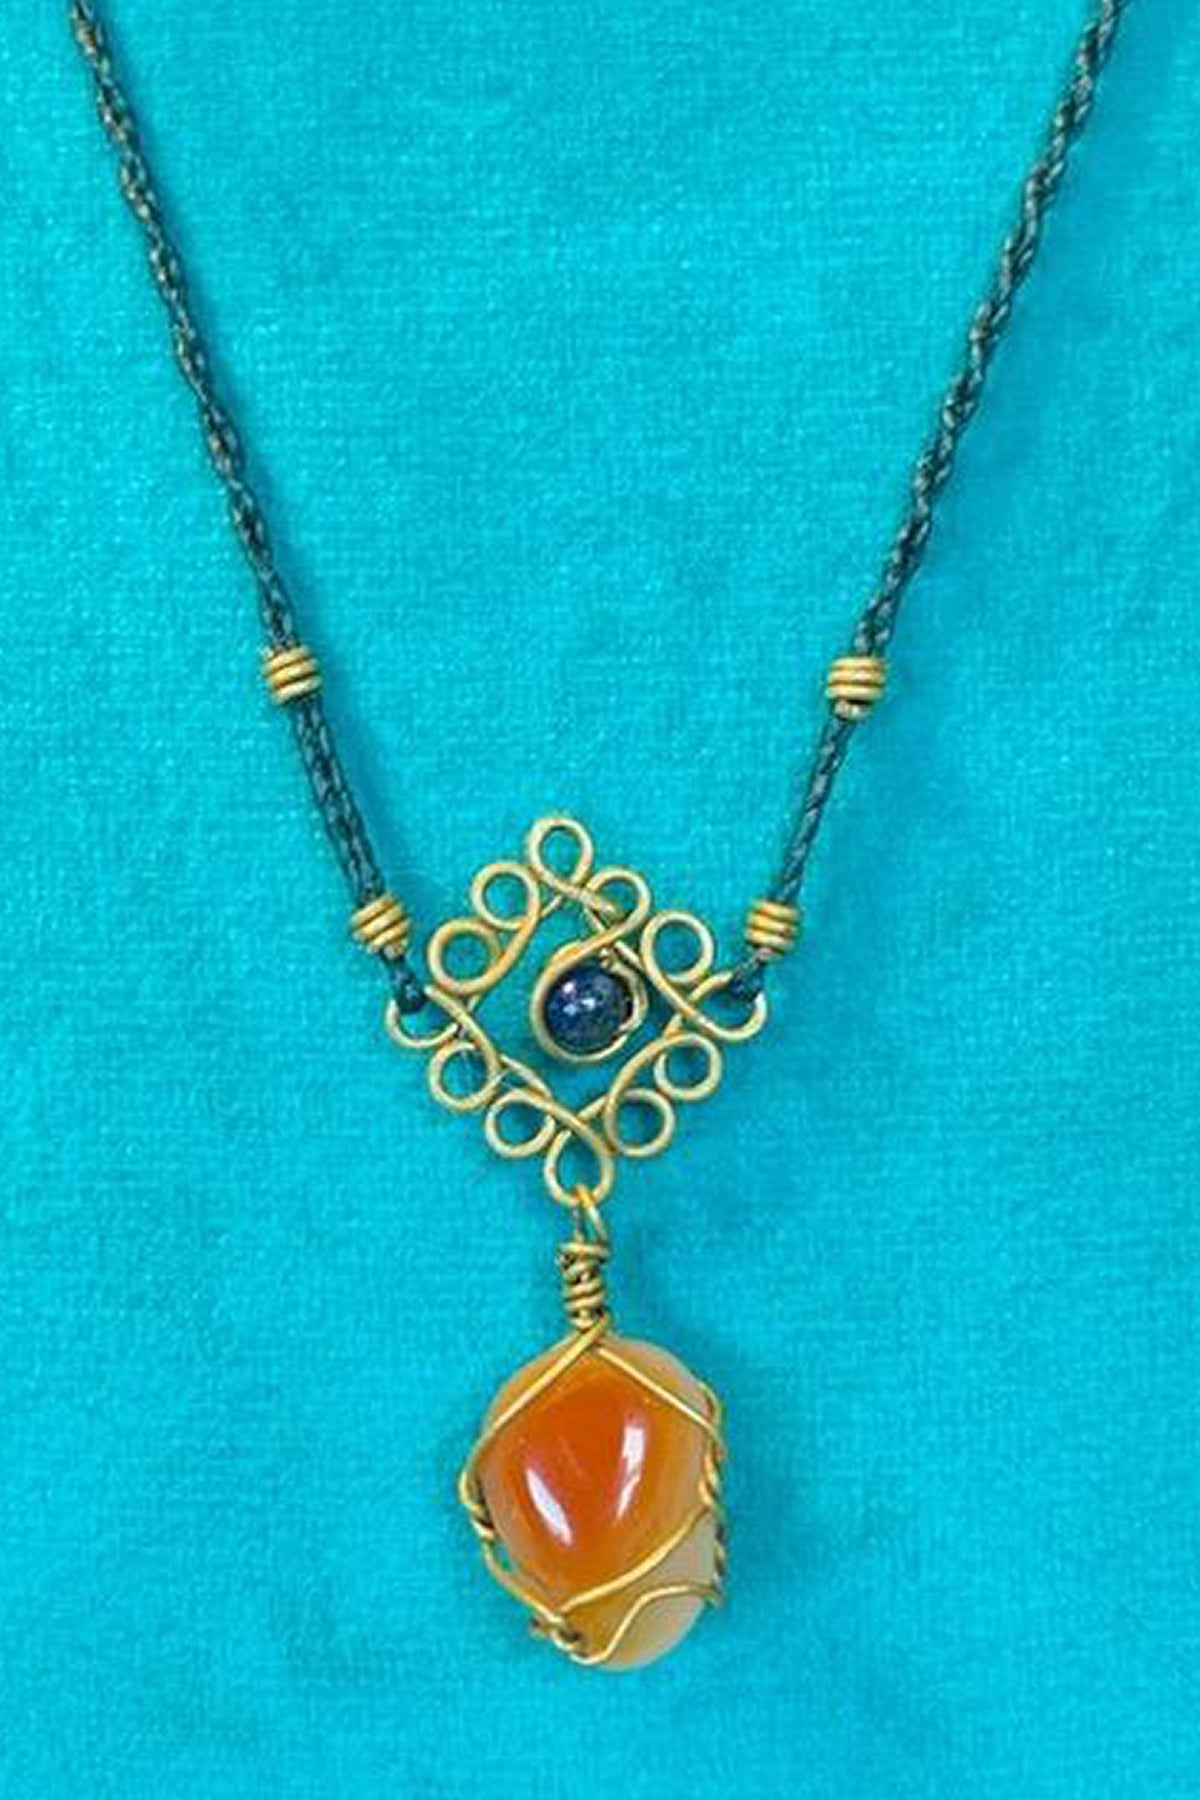 Mandala Necklace - Apricot Agate With Green